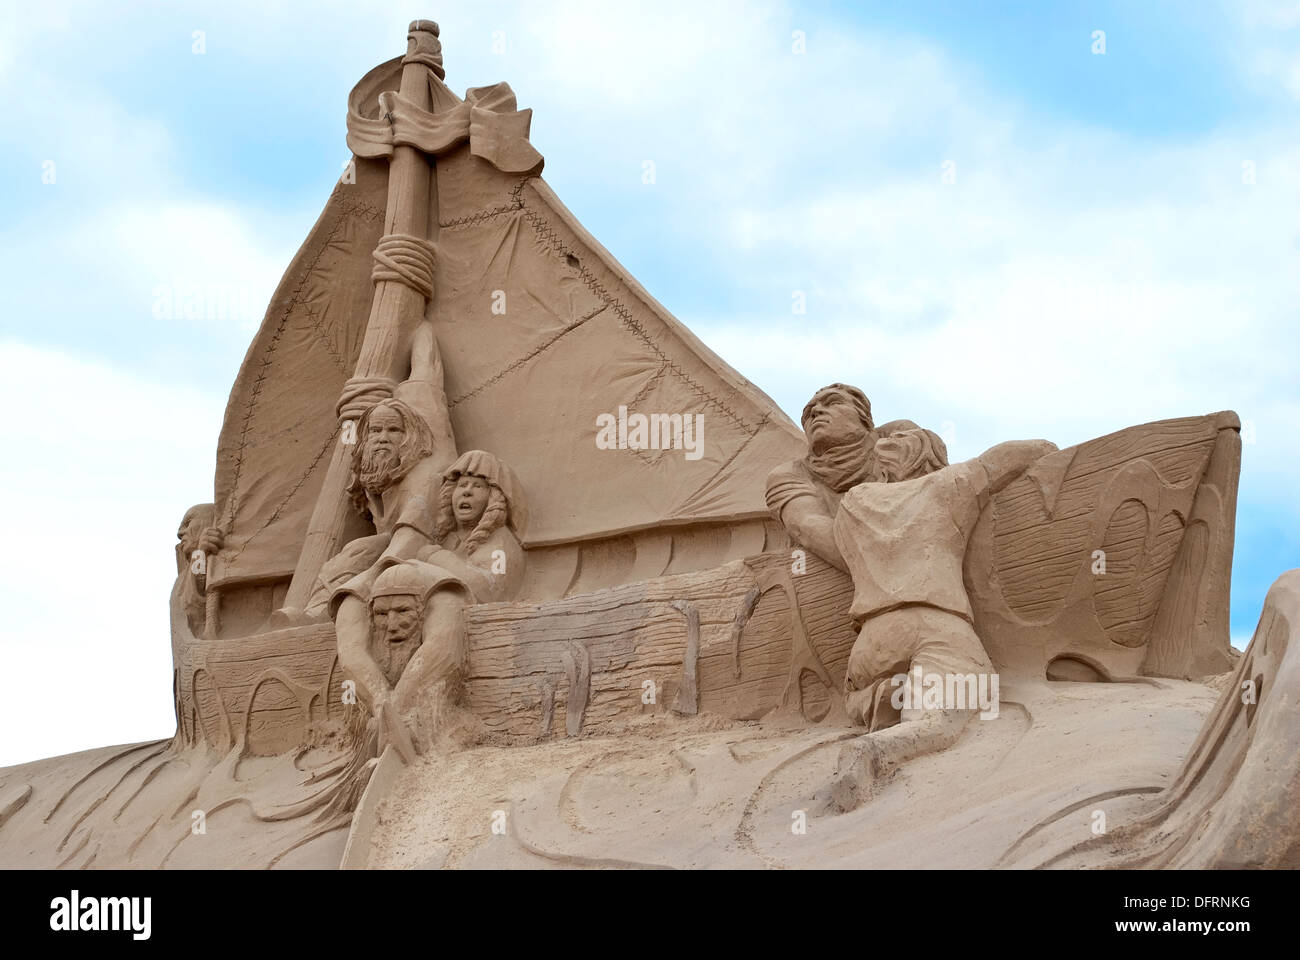 The sculptural composition of the sand at the city beach. - Stock Image